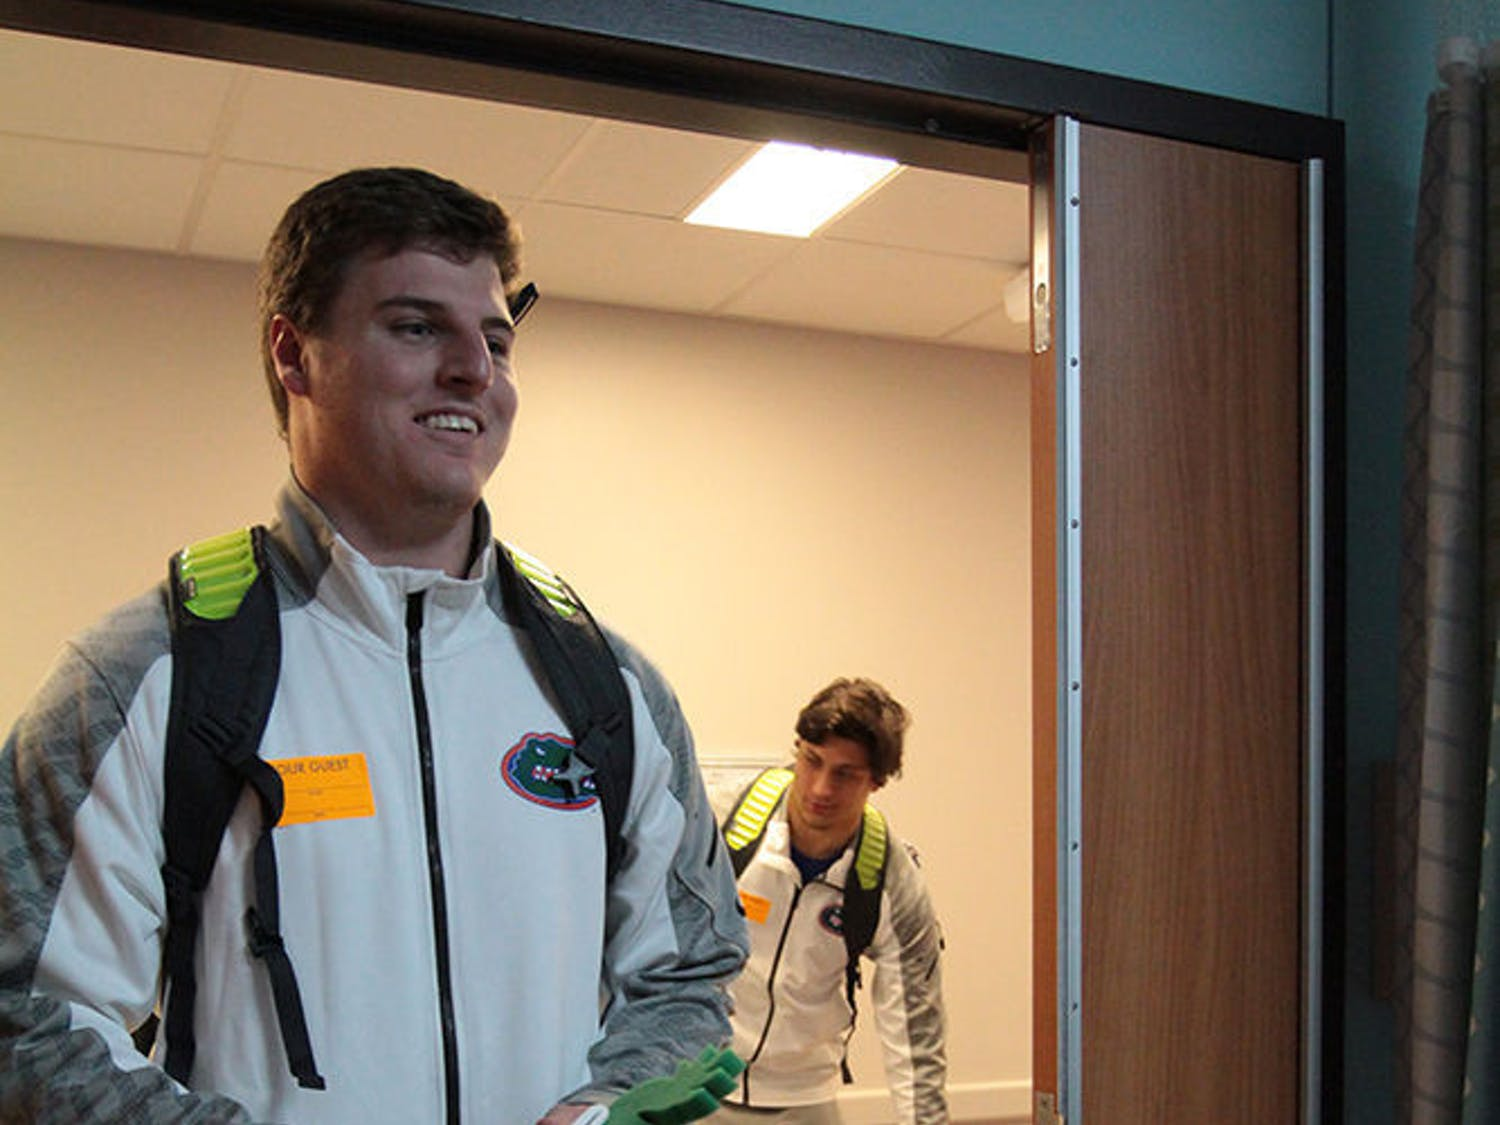 UF tight end Jake McGee and defensive lineman Jordan Sherit visit a patient at the Children's Hospital of Alabama at UAB in Birmingham on Thursday.